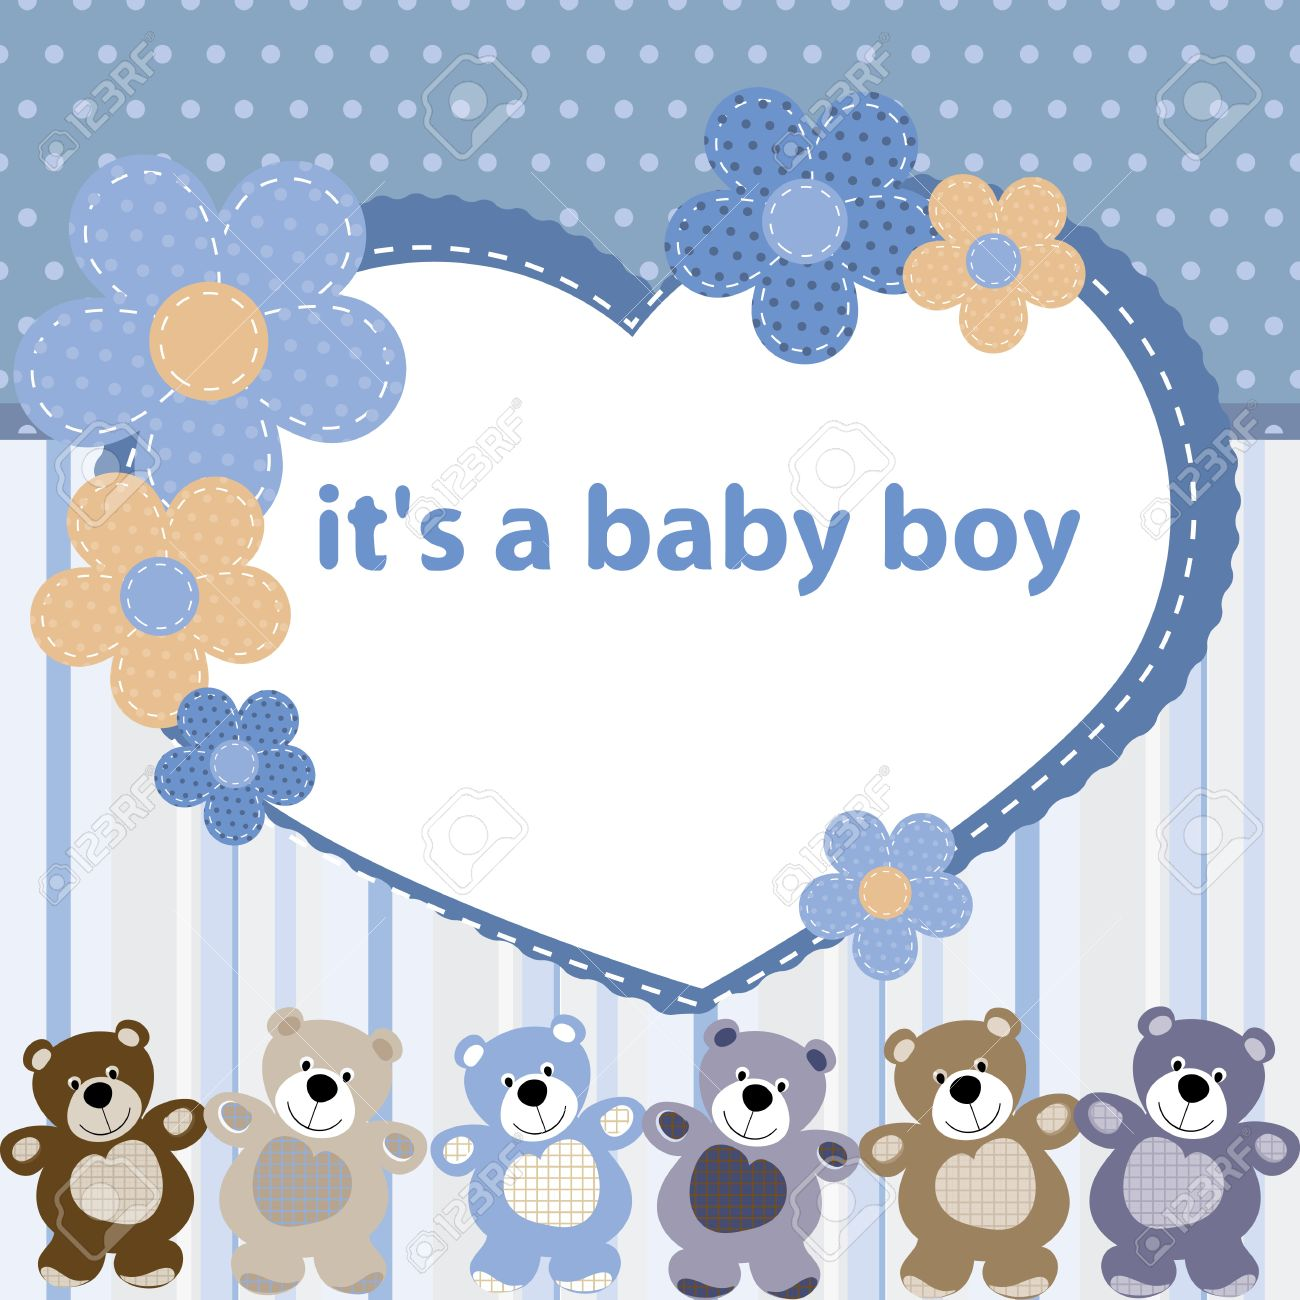 Greeting card with the birth of a baby boy royalty free cliparts greeting card with the birth of a baby boy stock vector 14600935 m4hsunfo